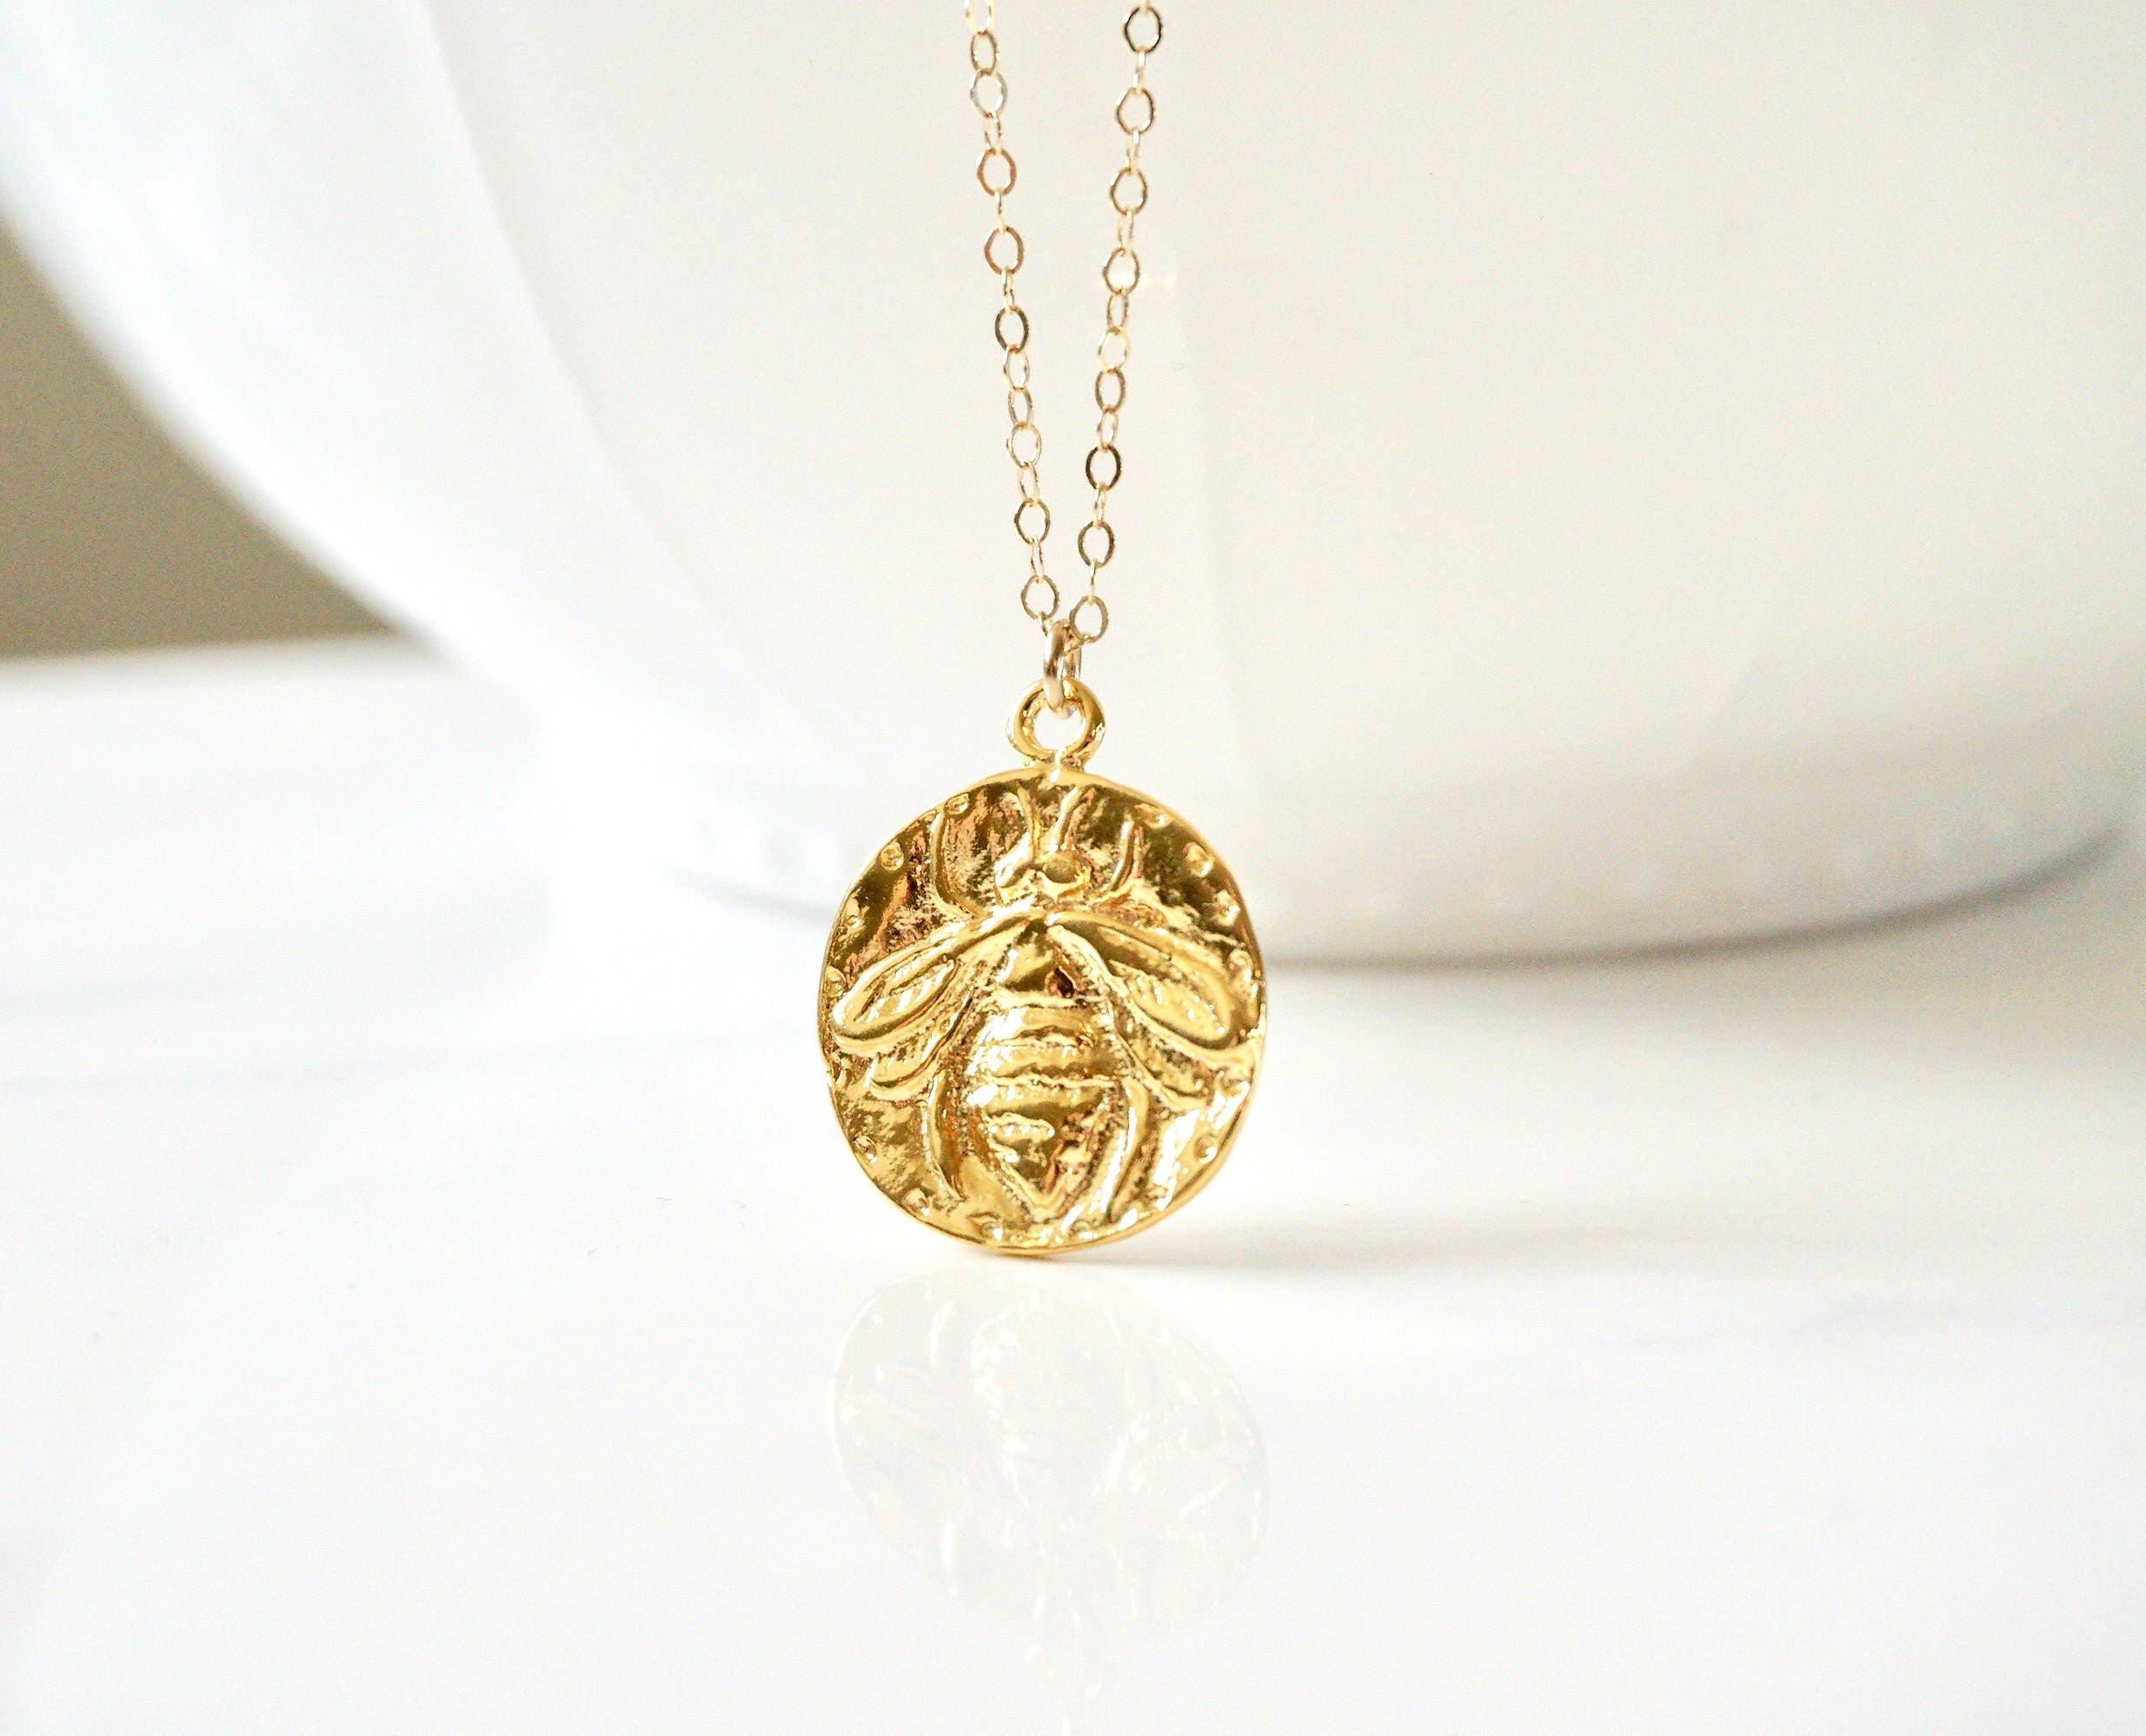 sale bree nicaea necklaces shop medallion gold pamela plated necklace card rebecca delicate garmentory